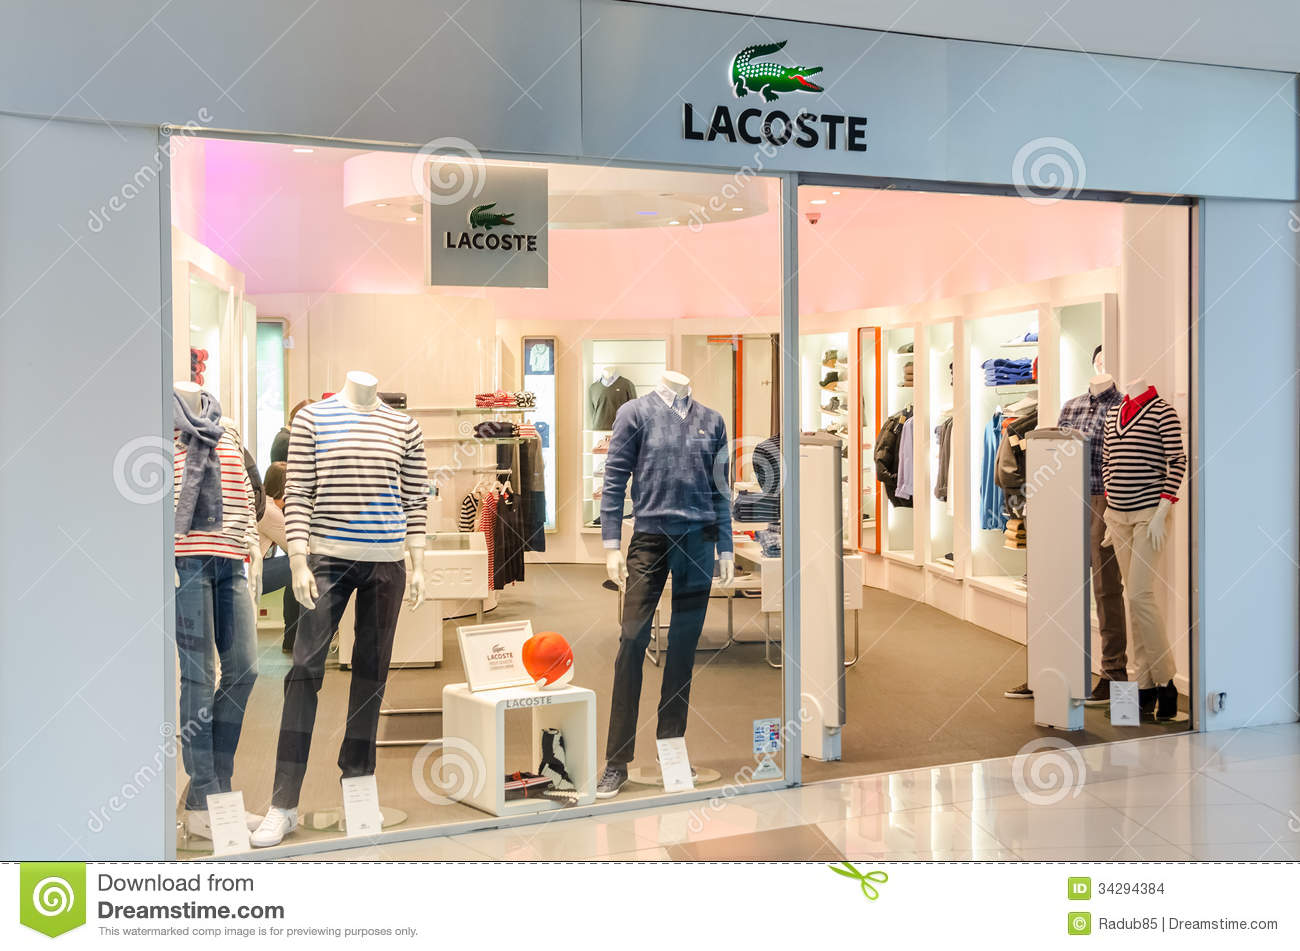 8bf2c3c9608 Lacoste Clothing Store| Lacoste Collection